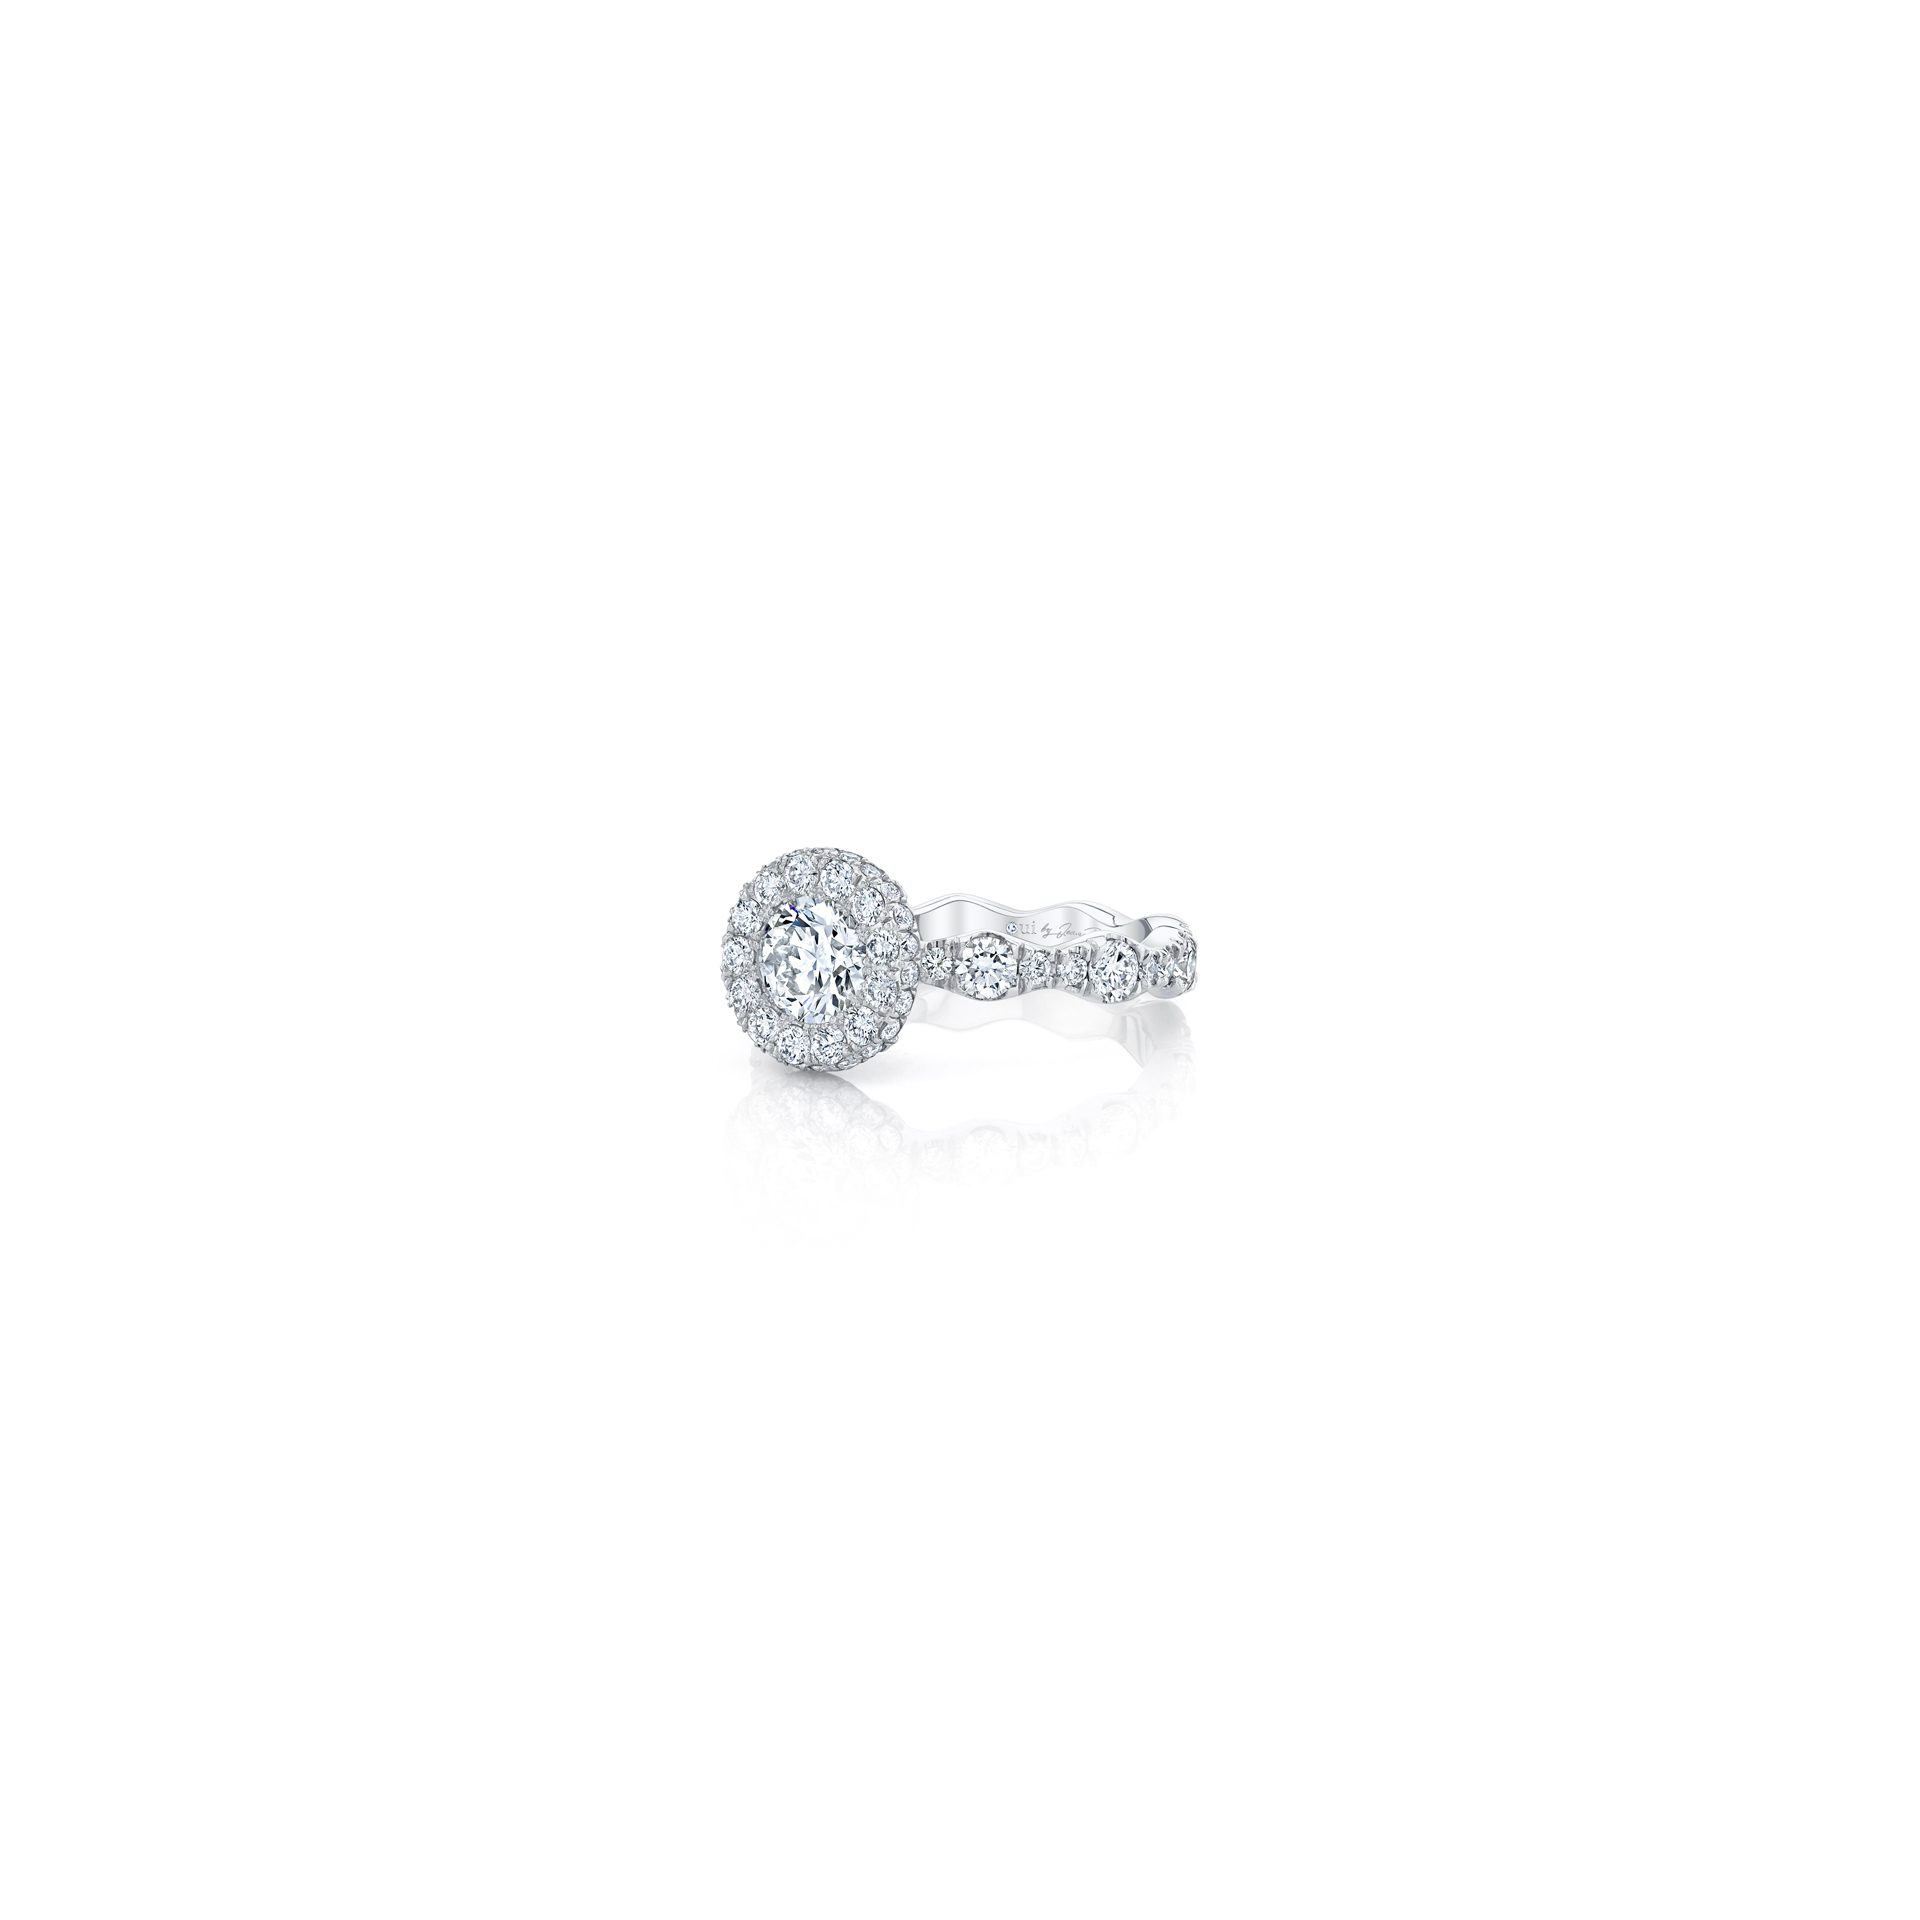 Yvonne Round Brilliant Seamless Halo® Engagement Ring with a diamond pavé wave band in 18k White Gold Side View by Oui by Jean Dousset